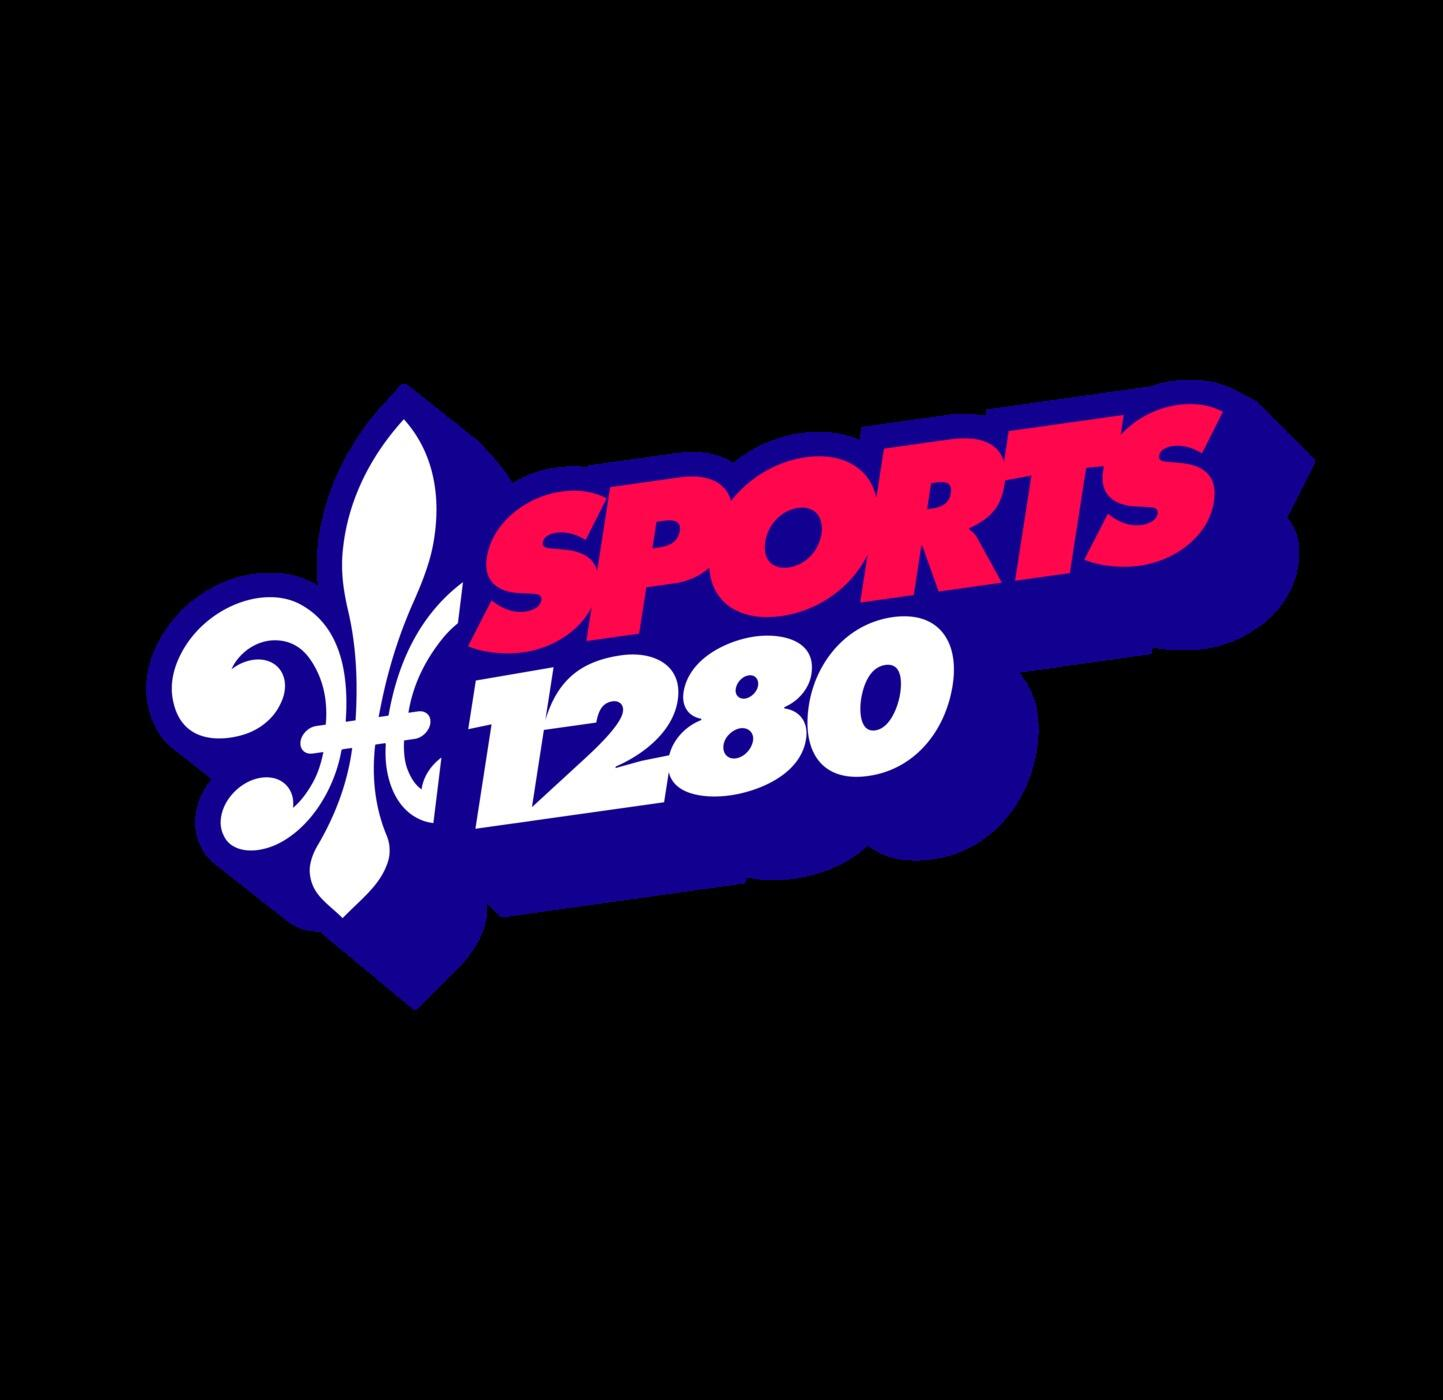 Listen to Can New LSU AD Scott Woodward Navigate the Land Mines and Politics Involved in Being the LSU AD? | Sports 1280 Clips | Podcasts